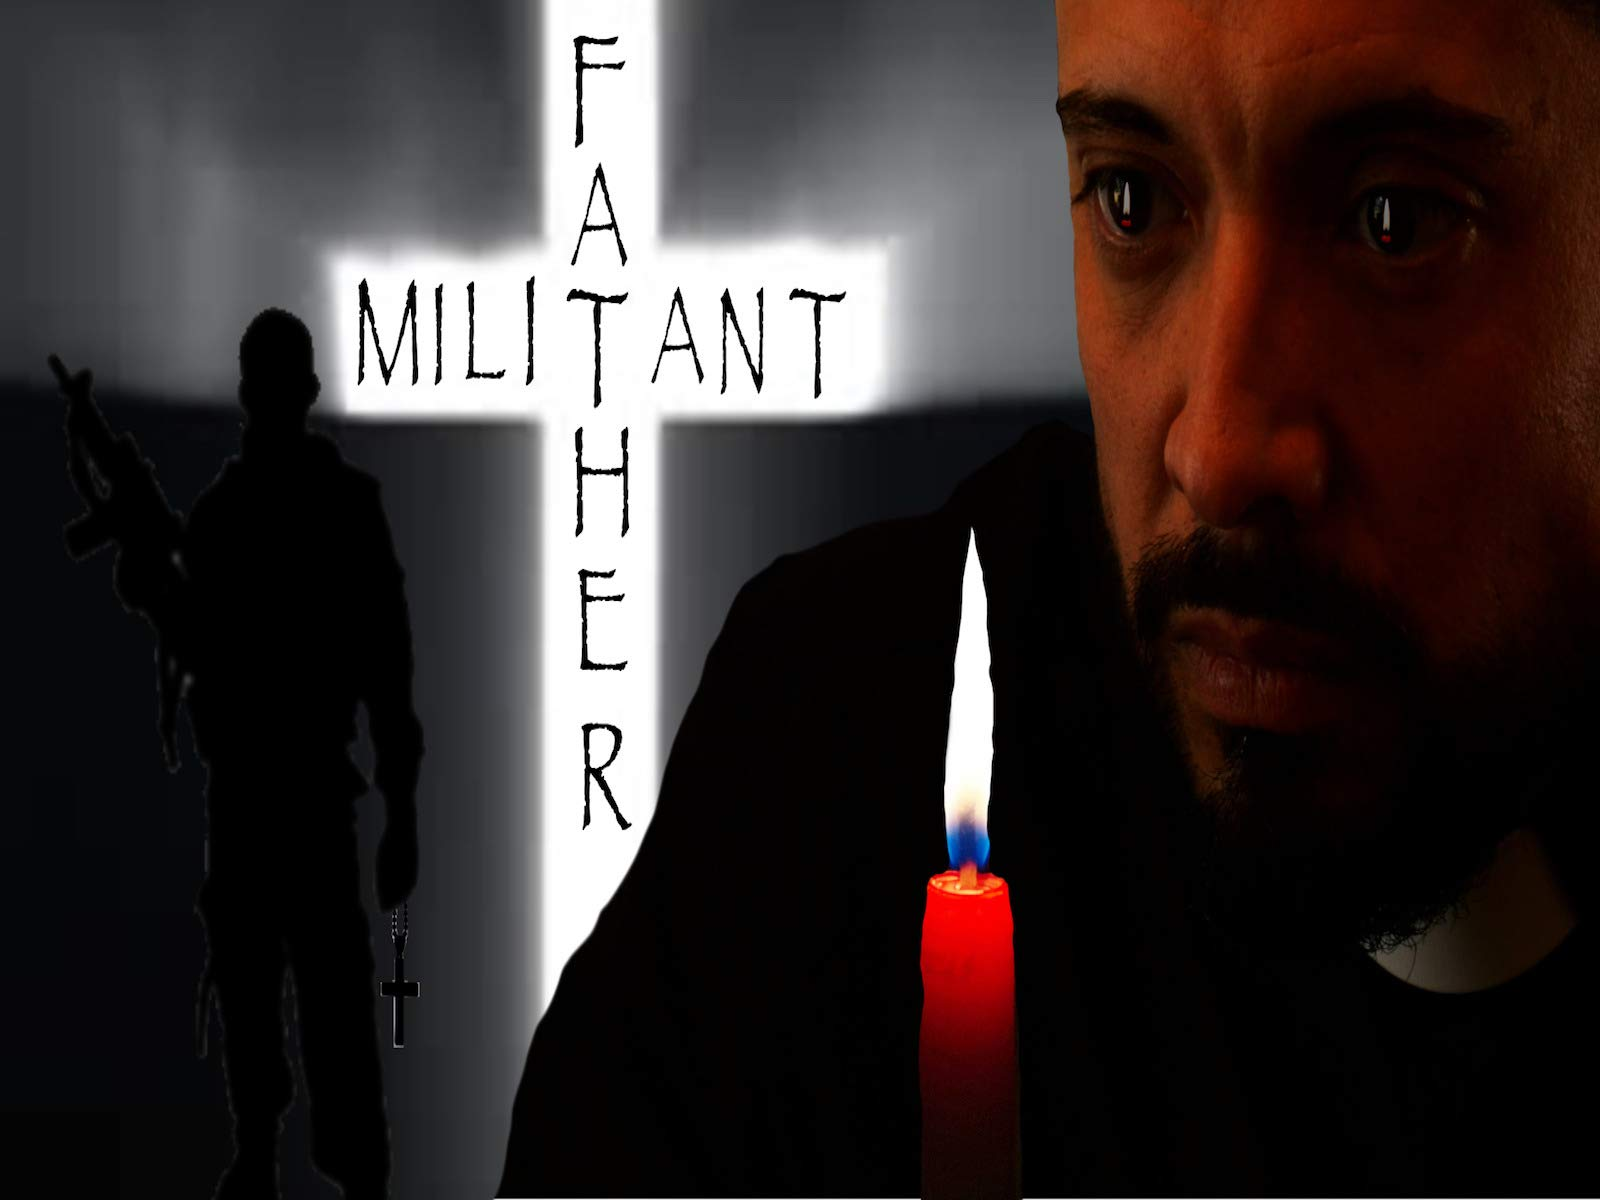 Father Militant